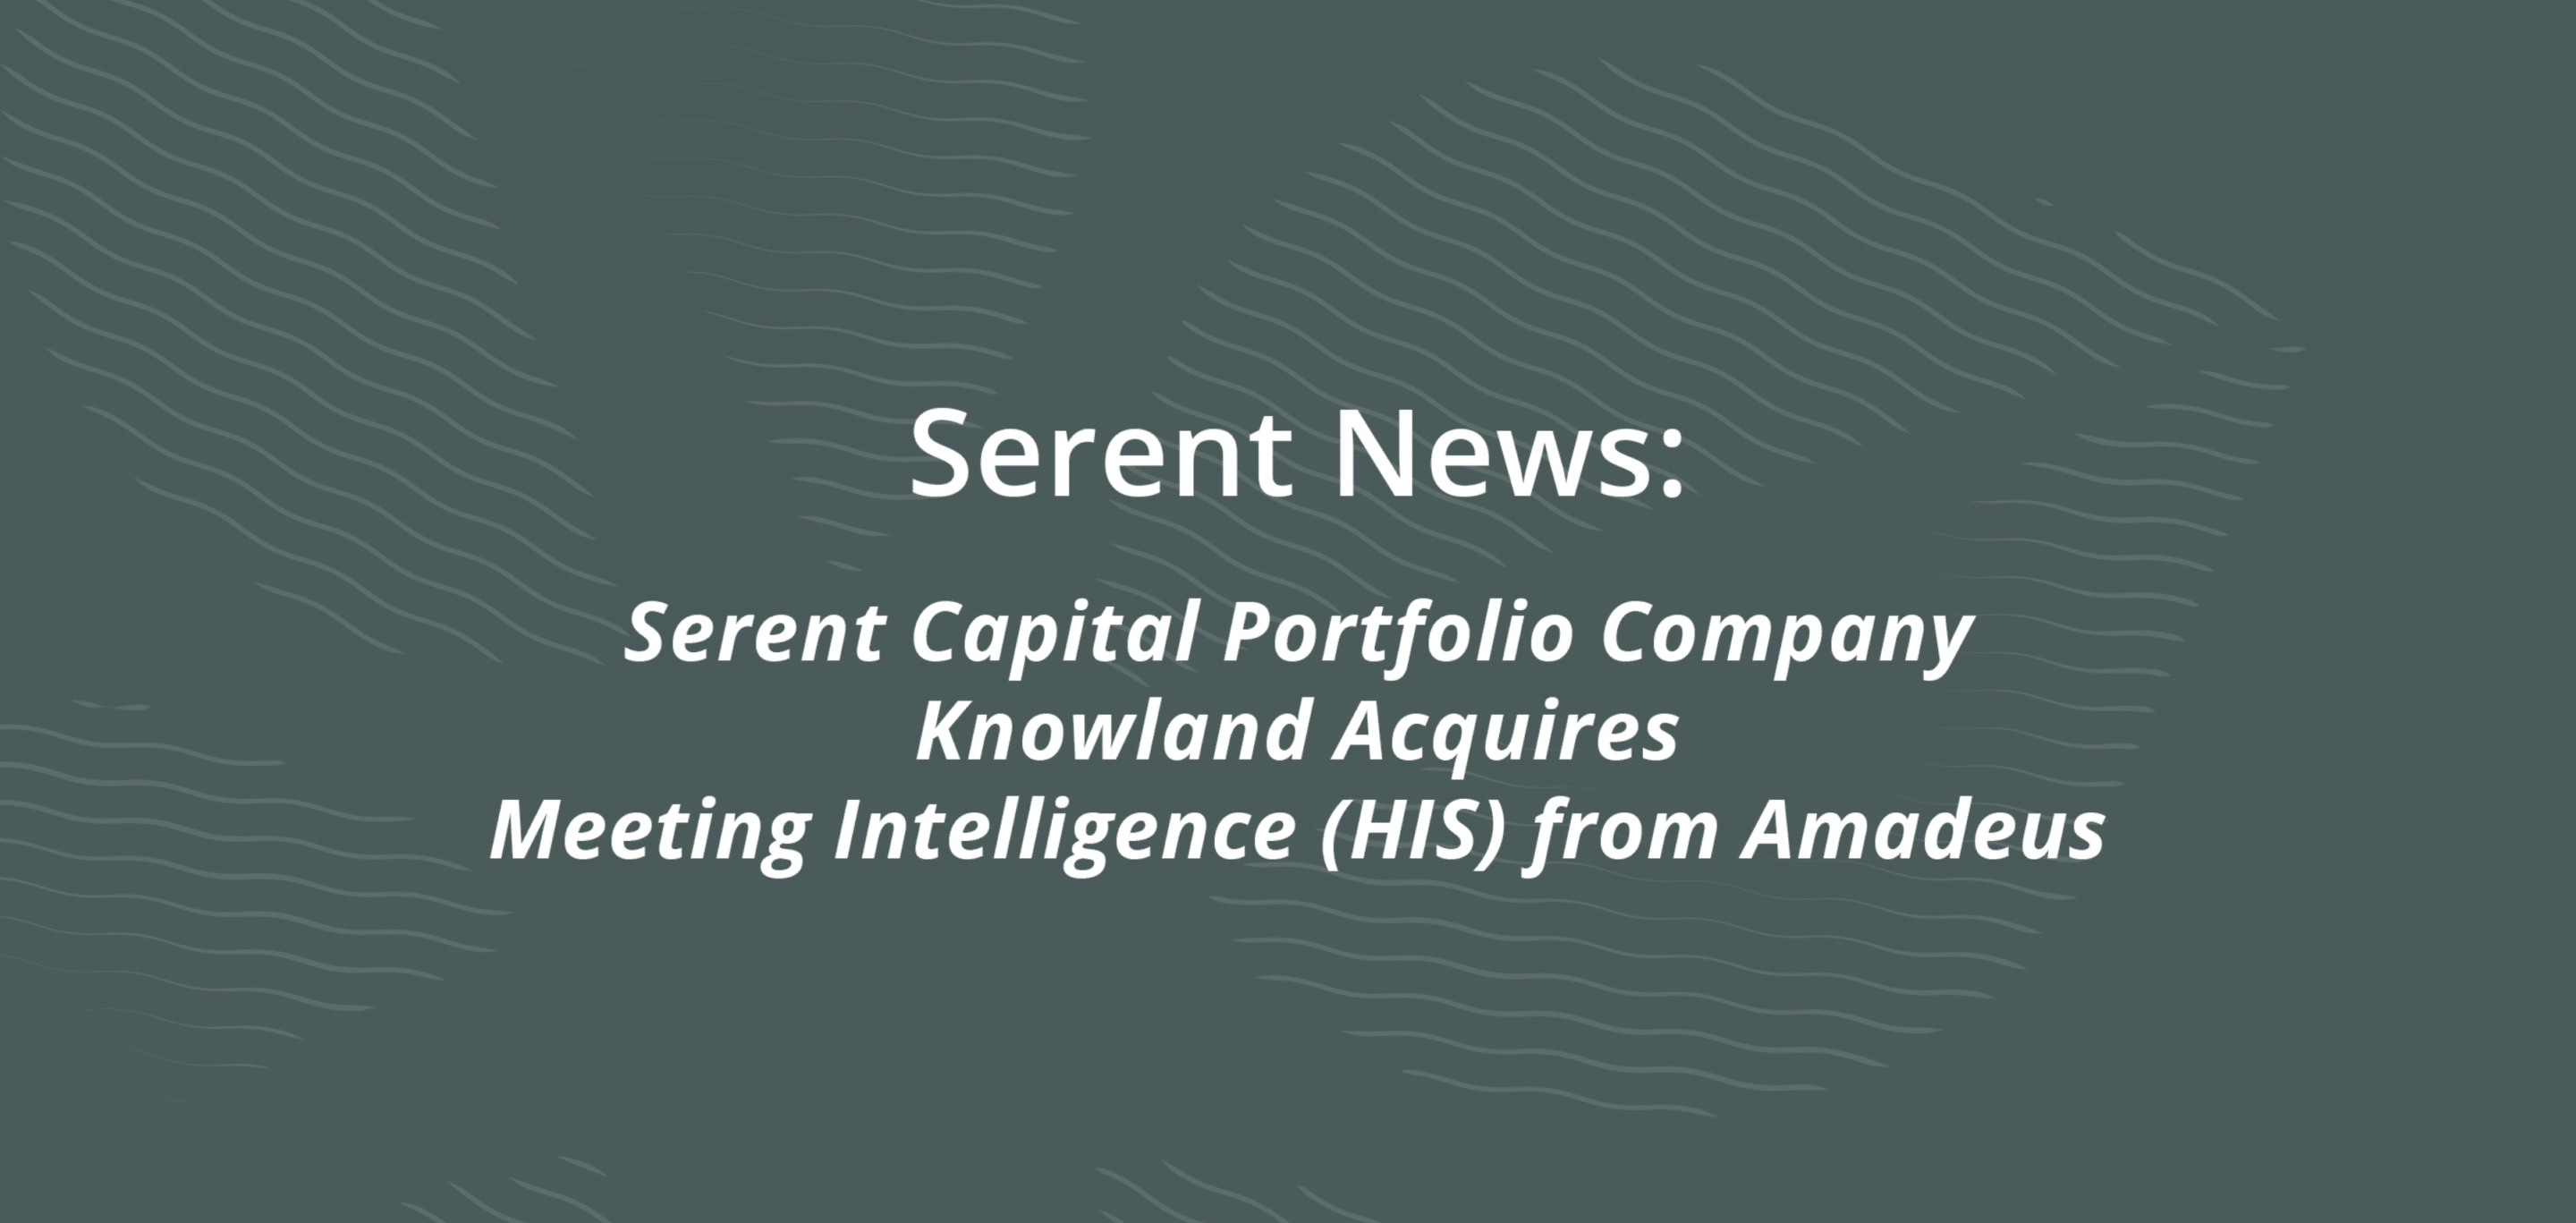 Serent Capital Portfolio Company Knowland Acquires Meeting Intelligence (HIS) from Amadeus